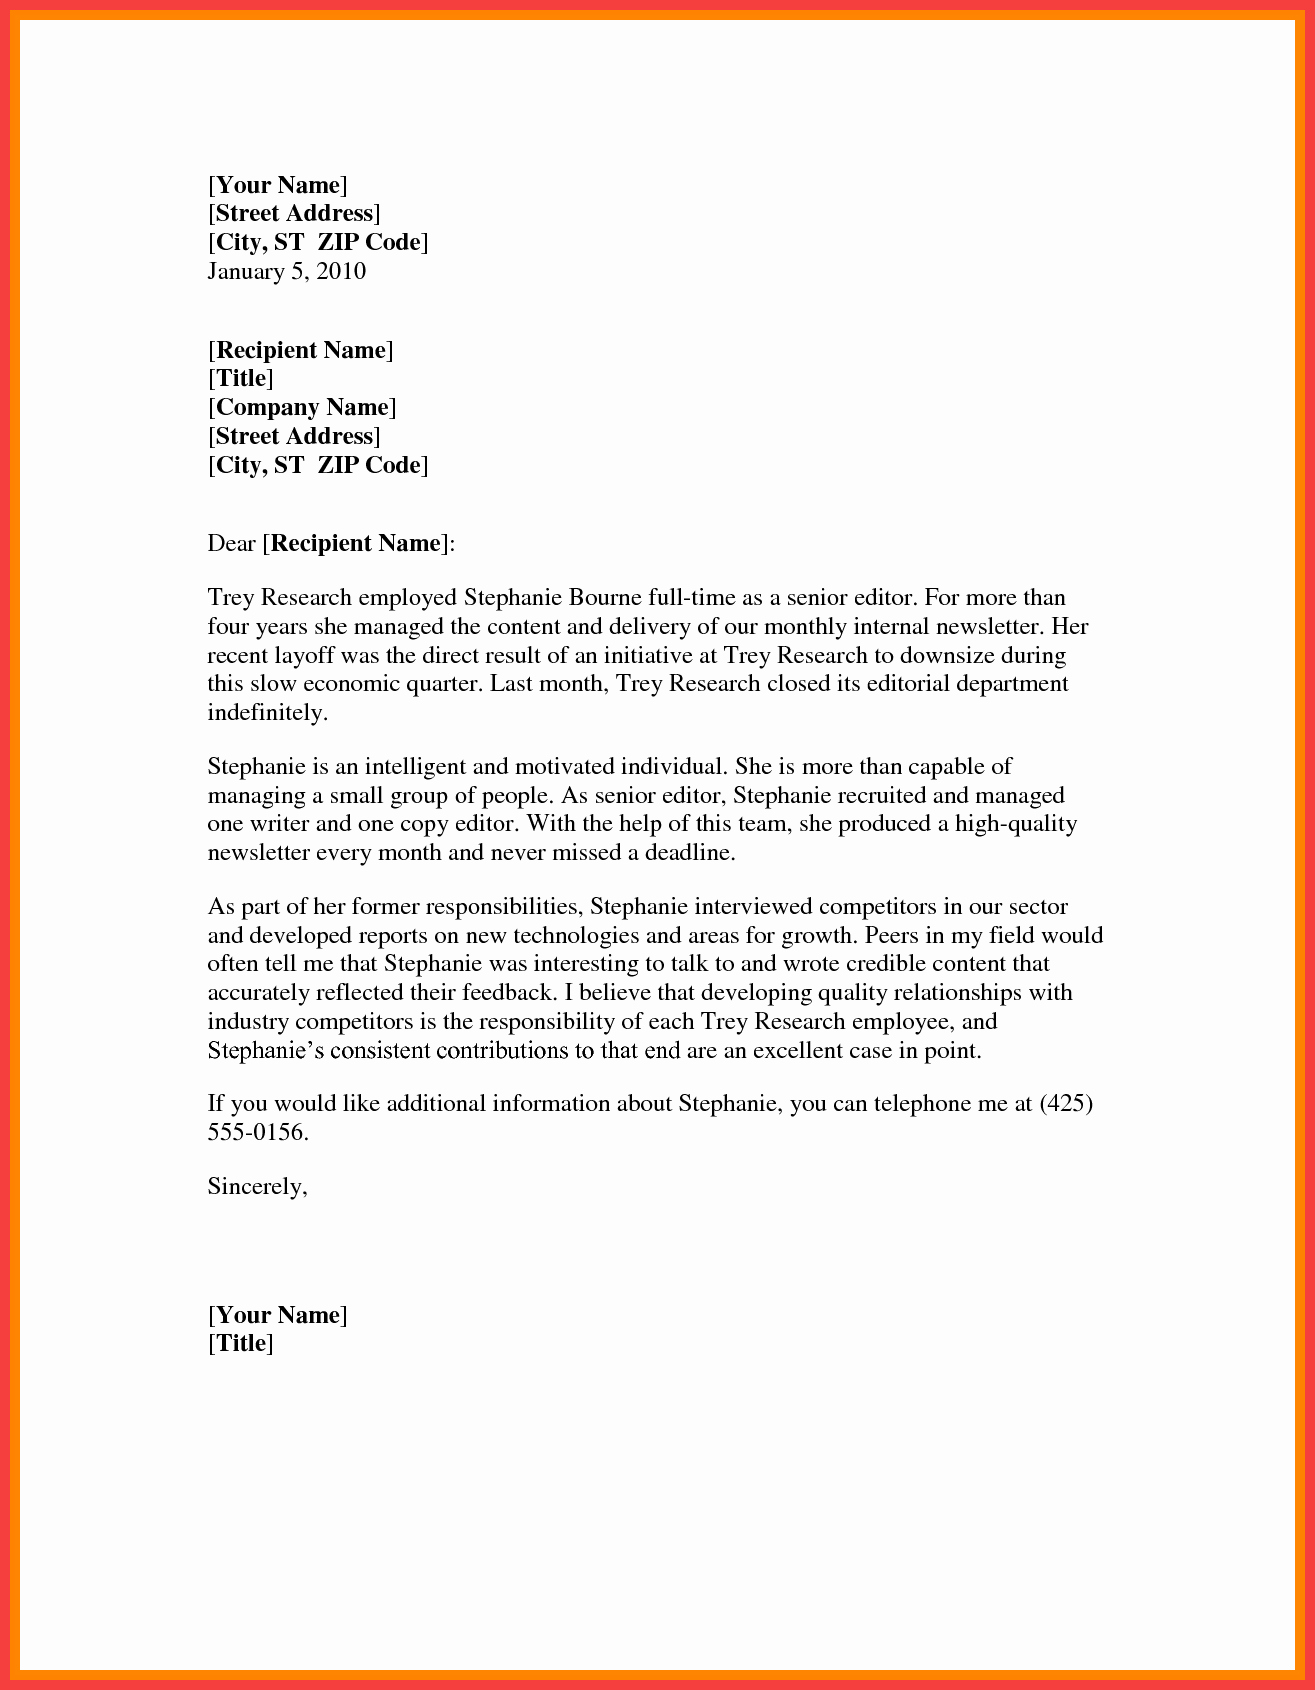 Formal Business Letter Template Word Luxury Word formal Letter Template